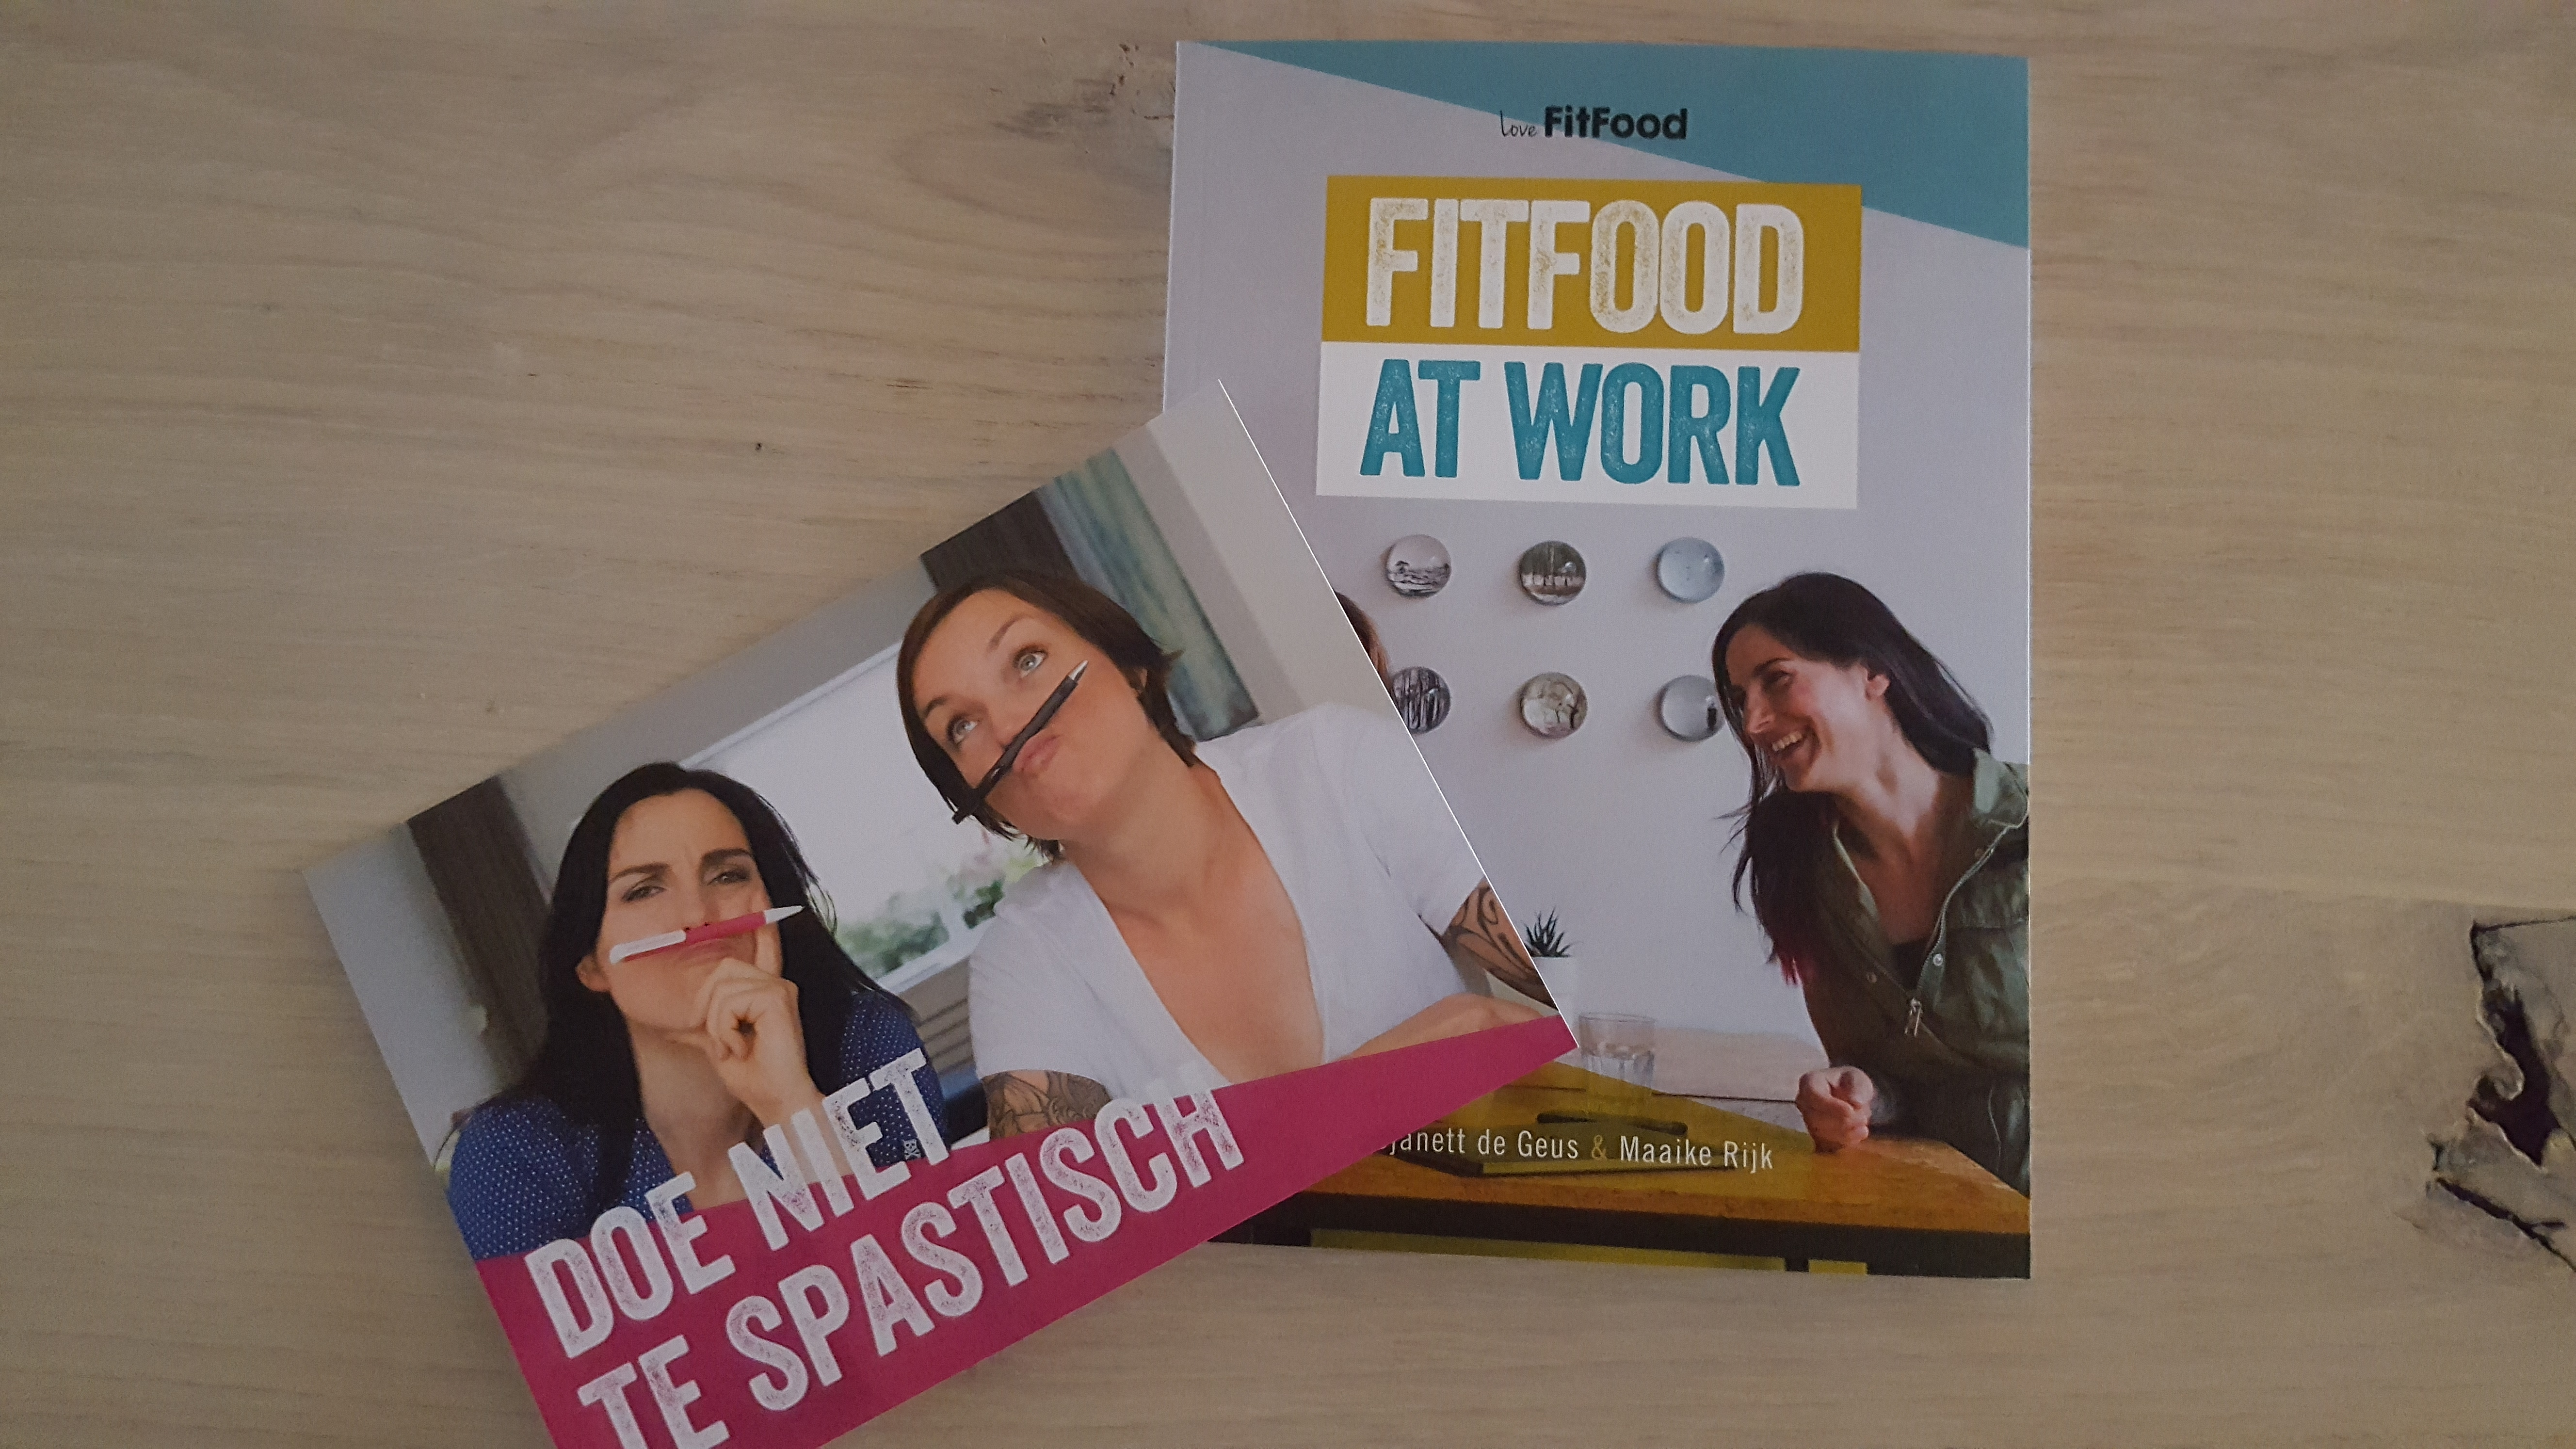 FitFood at work